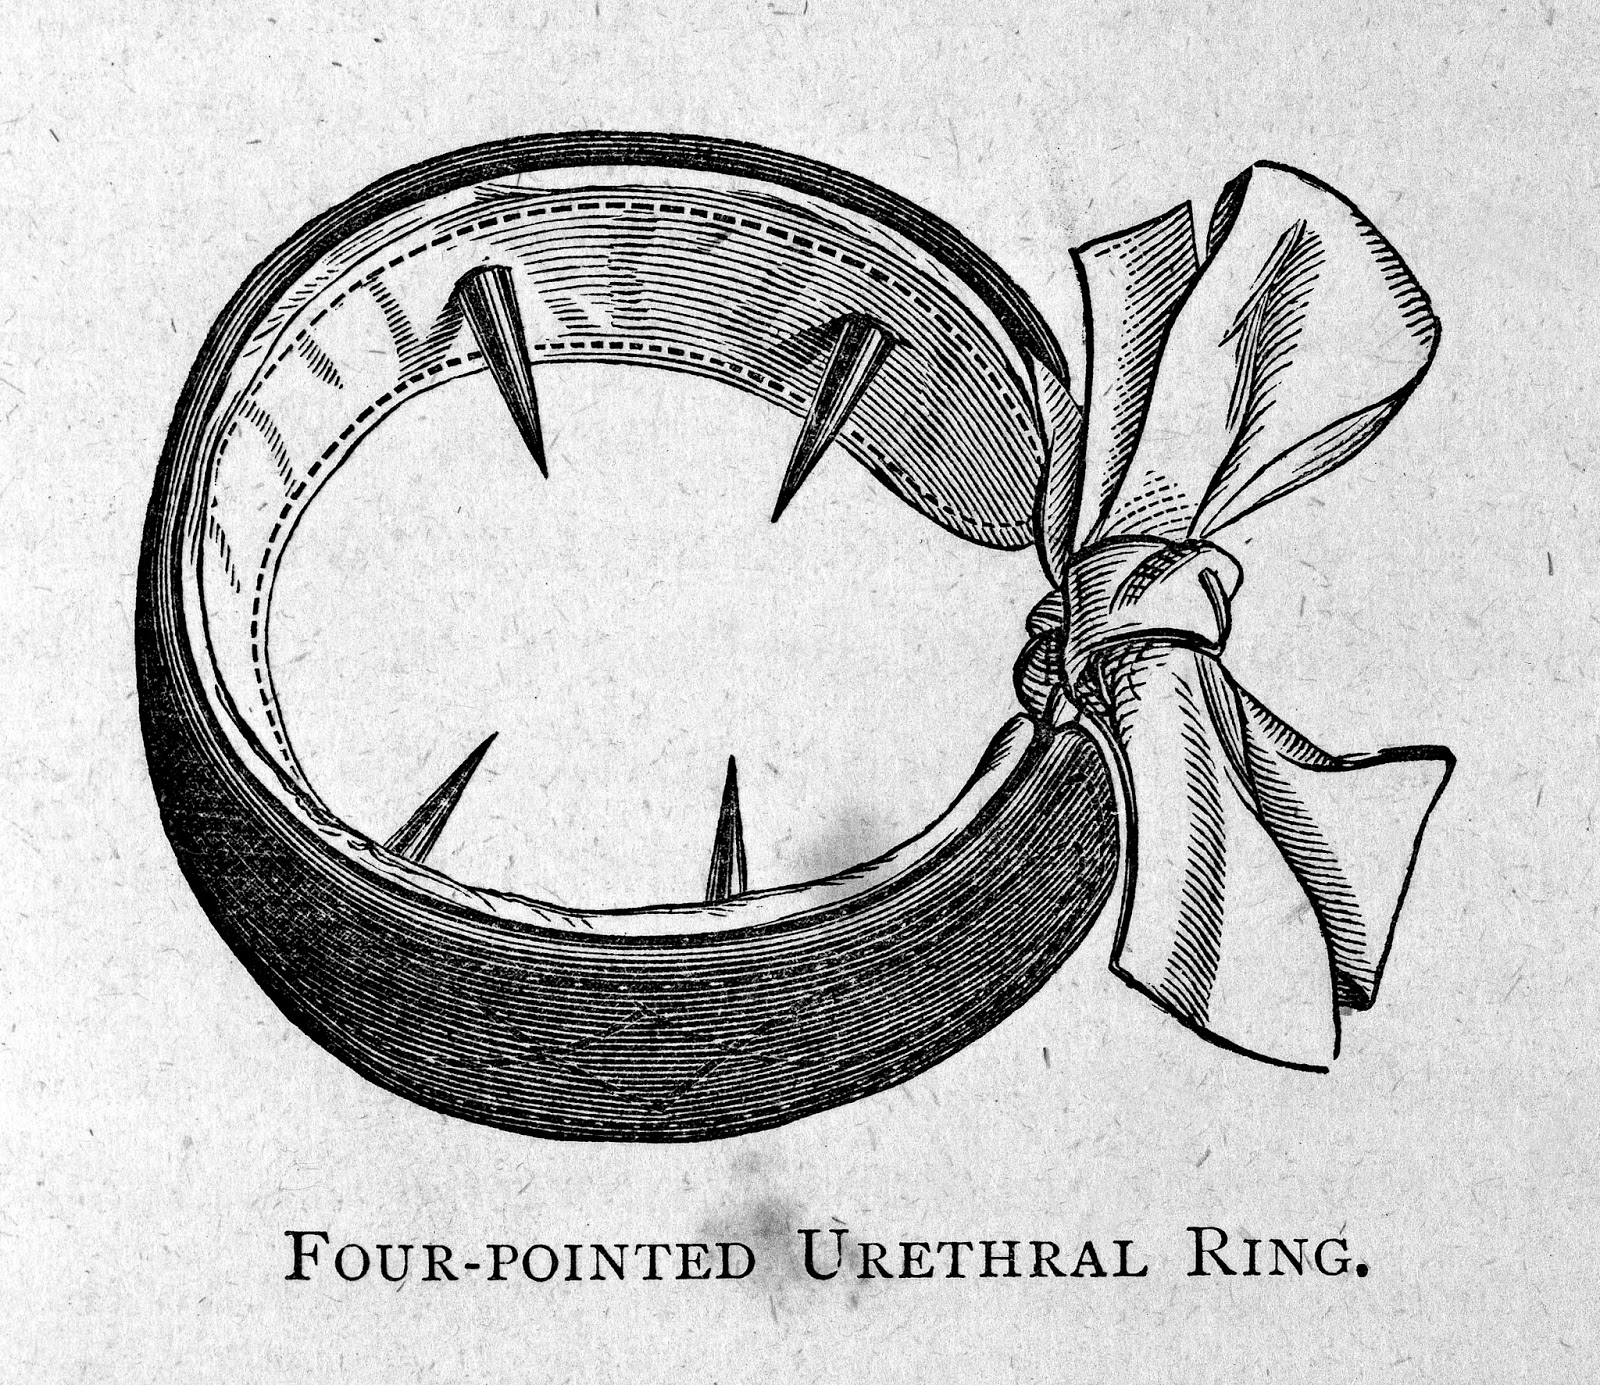 Four Pointed Urethral Ring for the Treatment of Masturbation, 1887. (Image  via Wellcome Library CC BY 4.0)